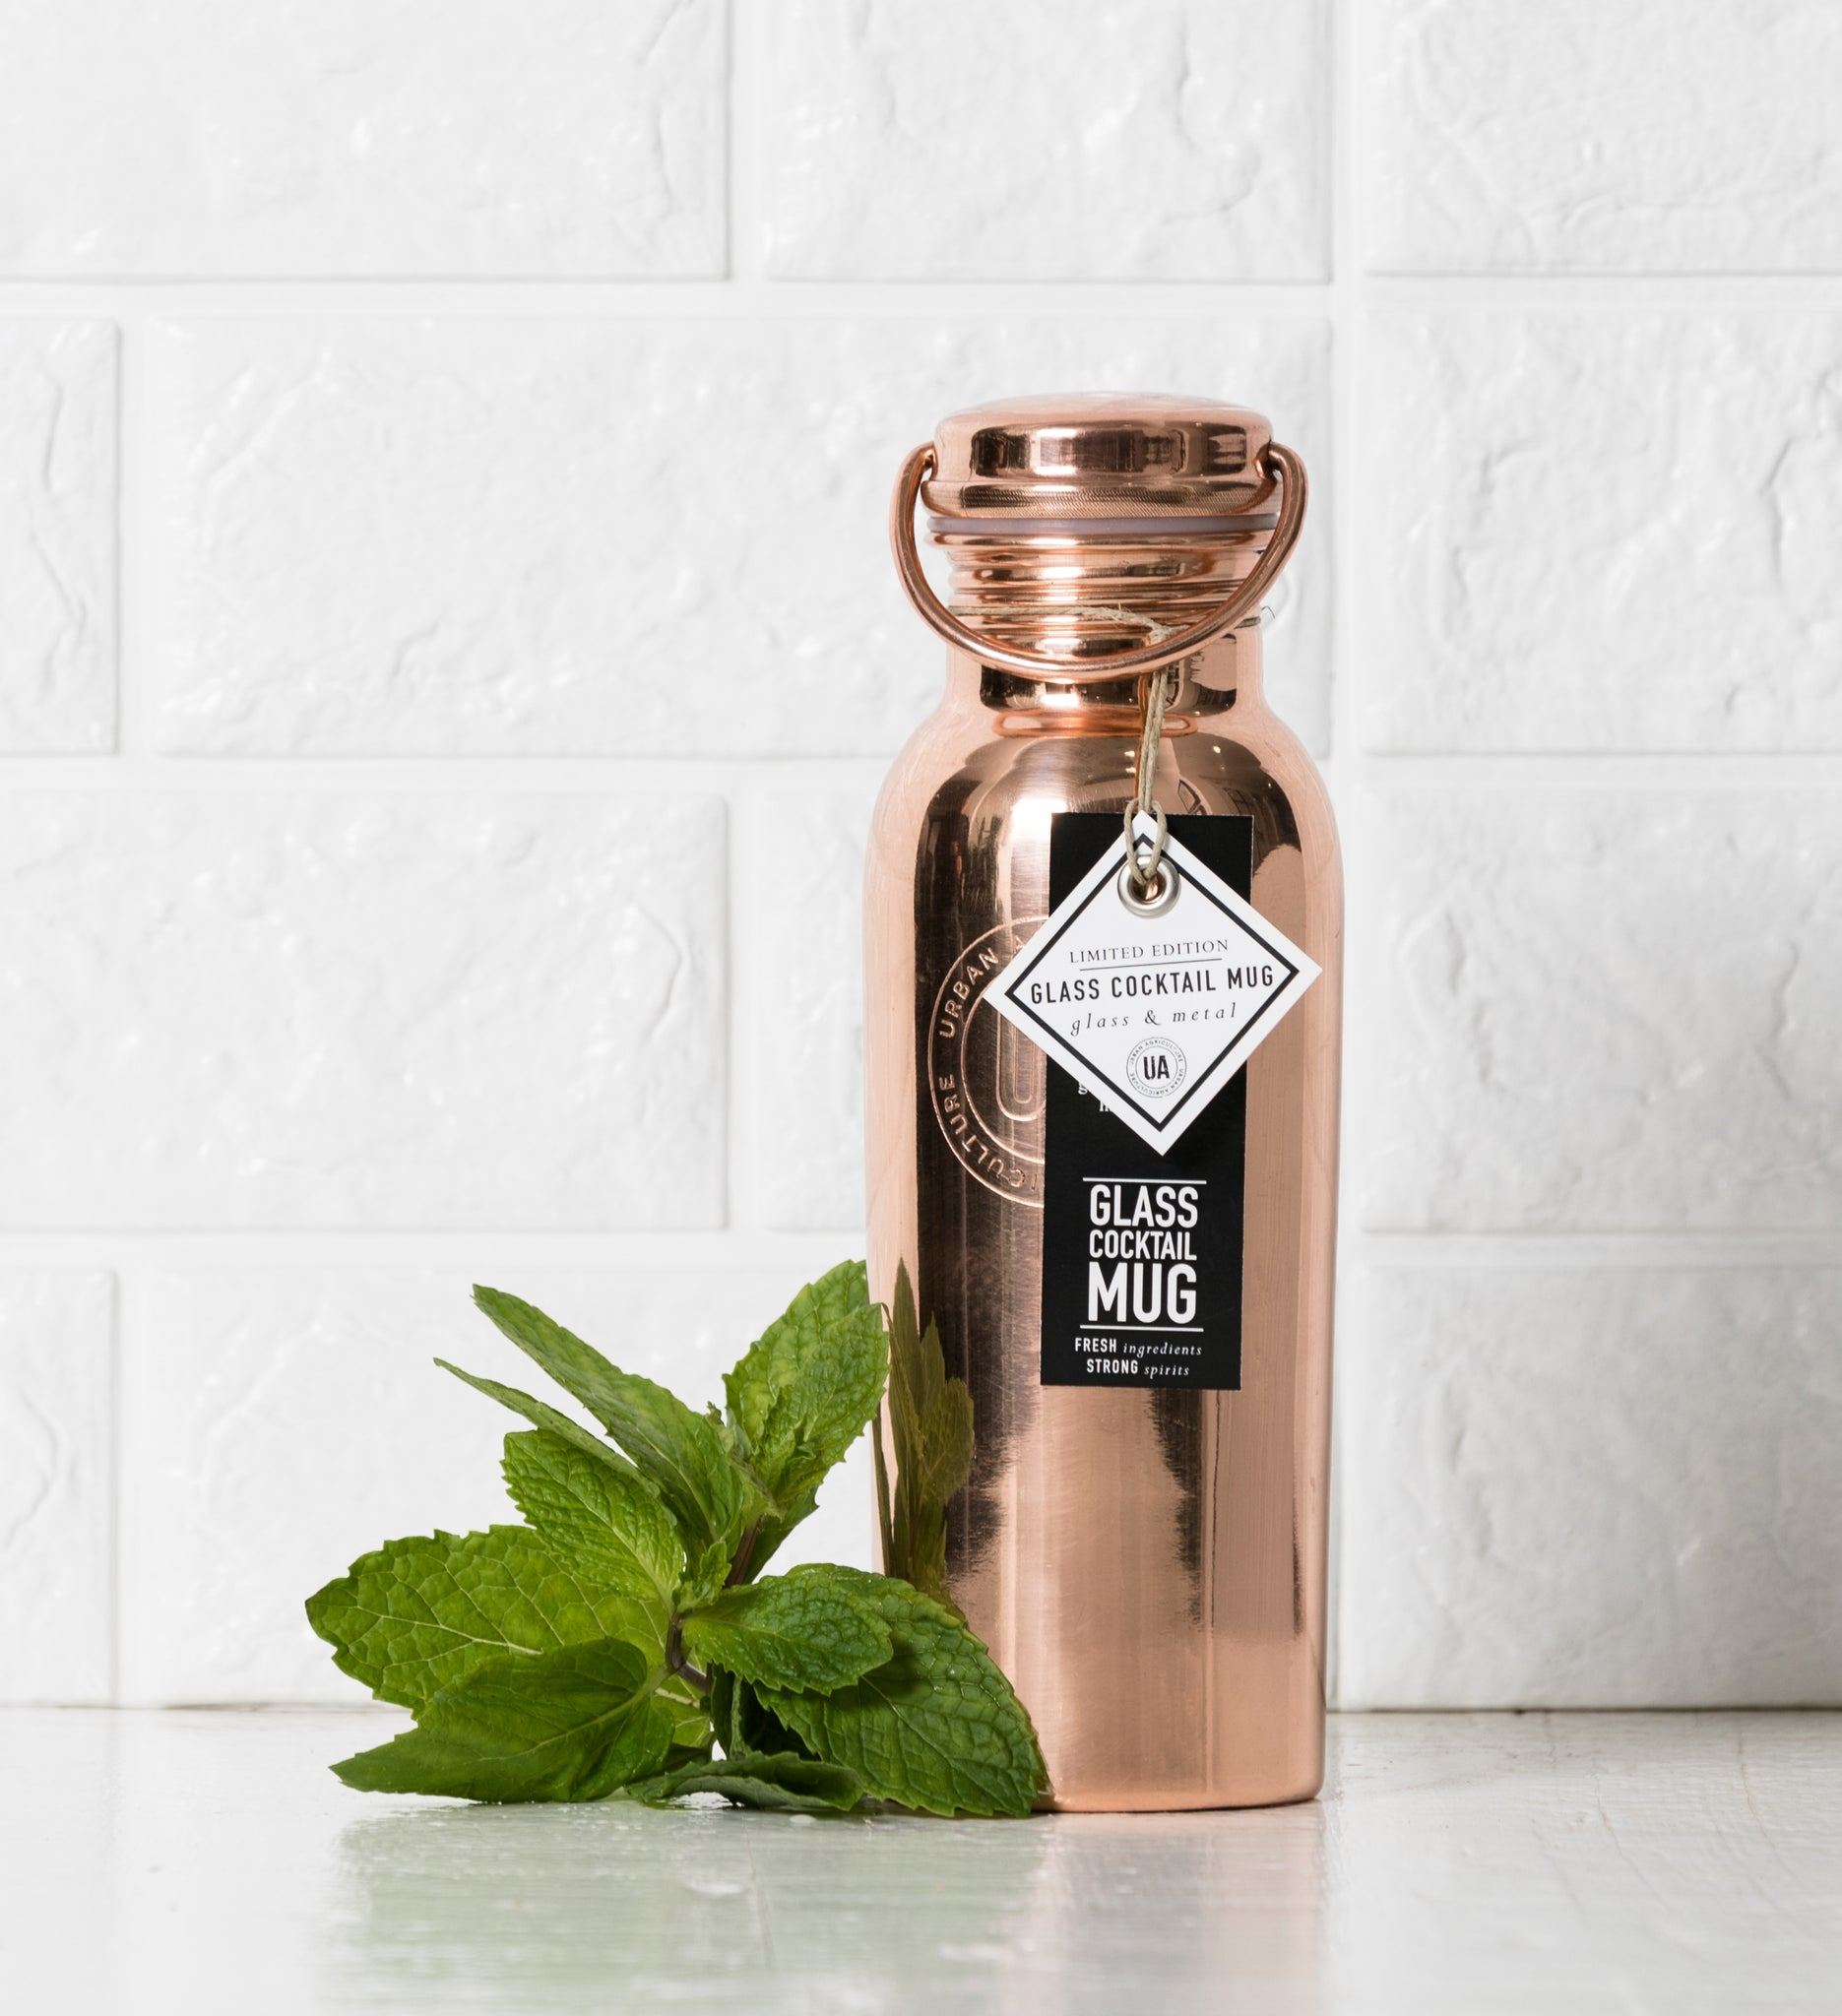 The Urban Agriculture Company - Moscow Mule To-Go Copper Bottle